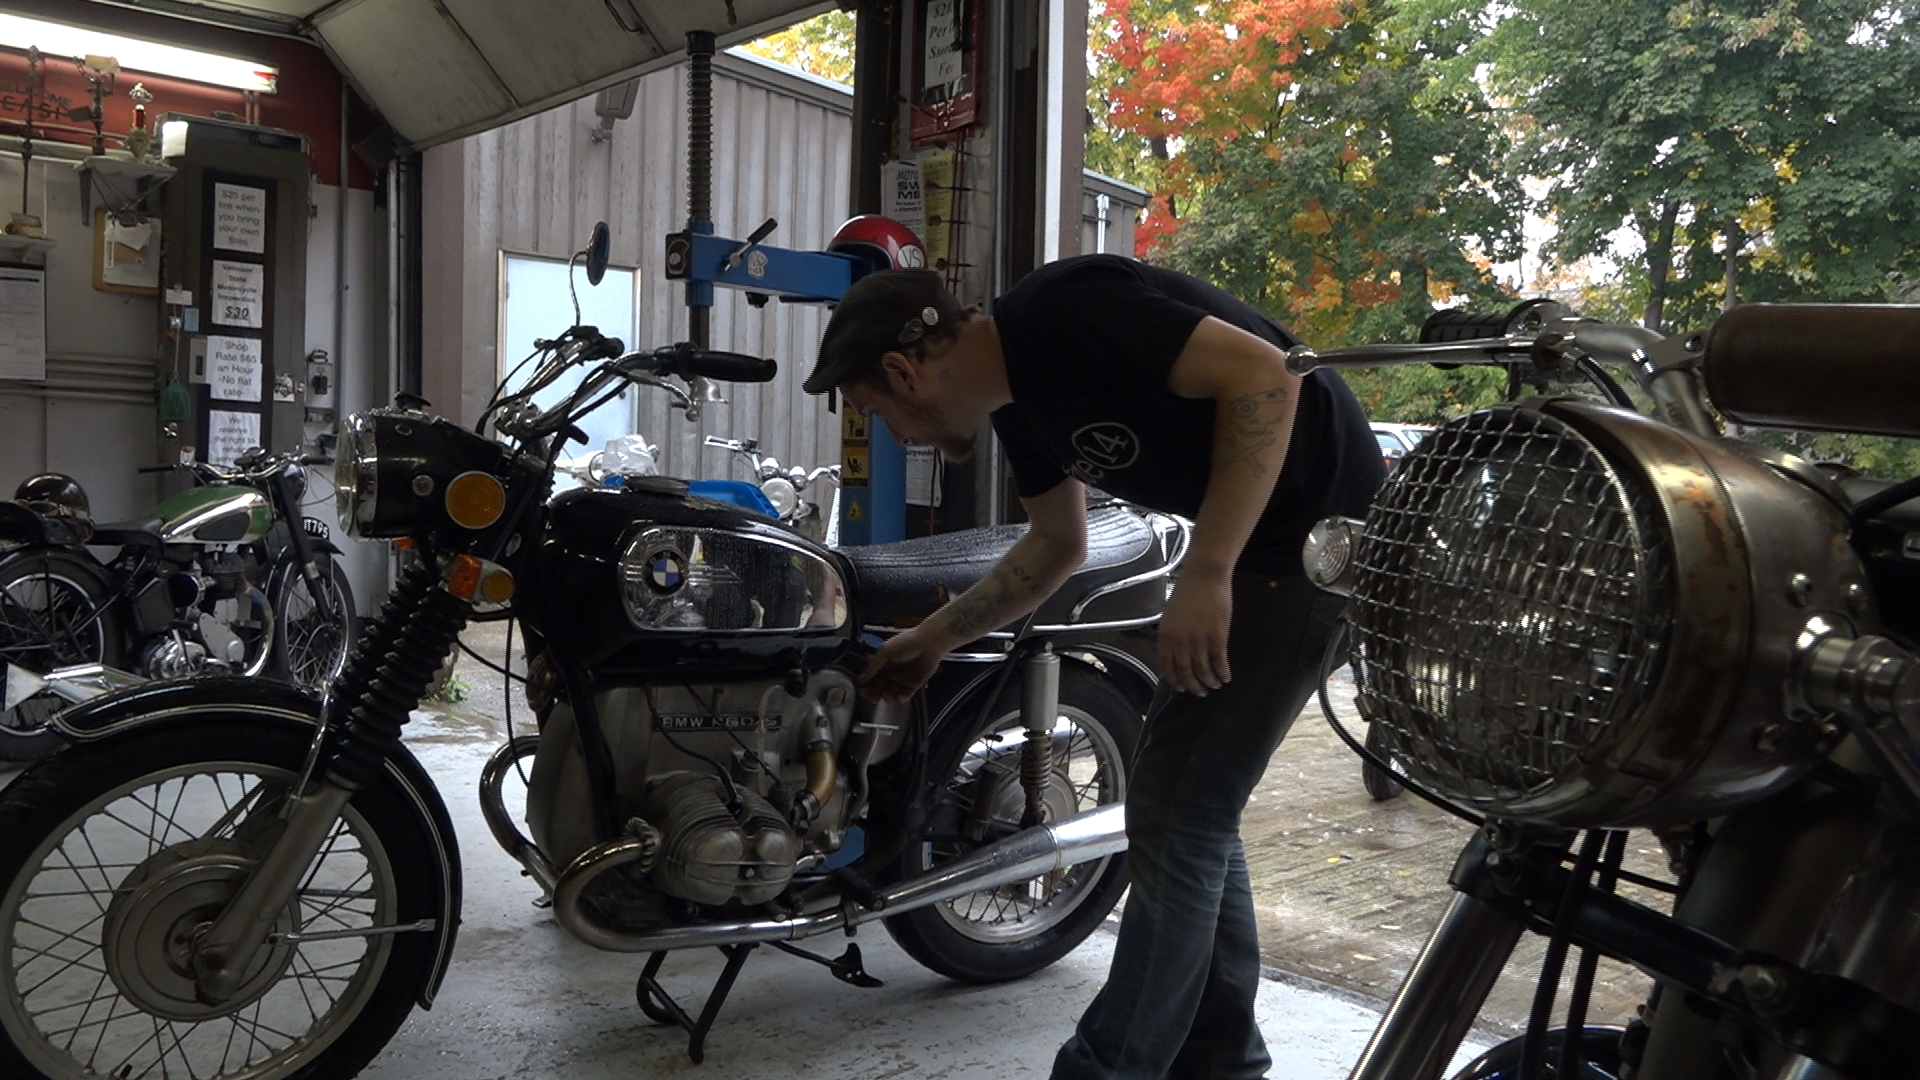 Visit Brattleboro, VT's Vintage Steele & see how owner Josh Steele's passion for vintage motorcycles grew from a garage hobby into a burgeoning business.